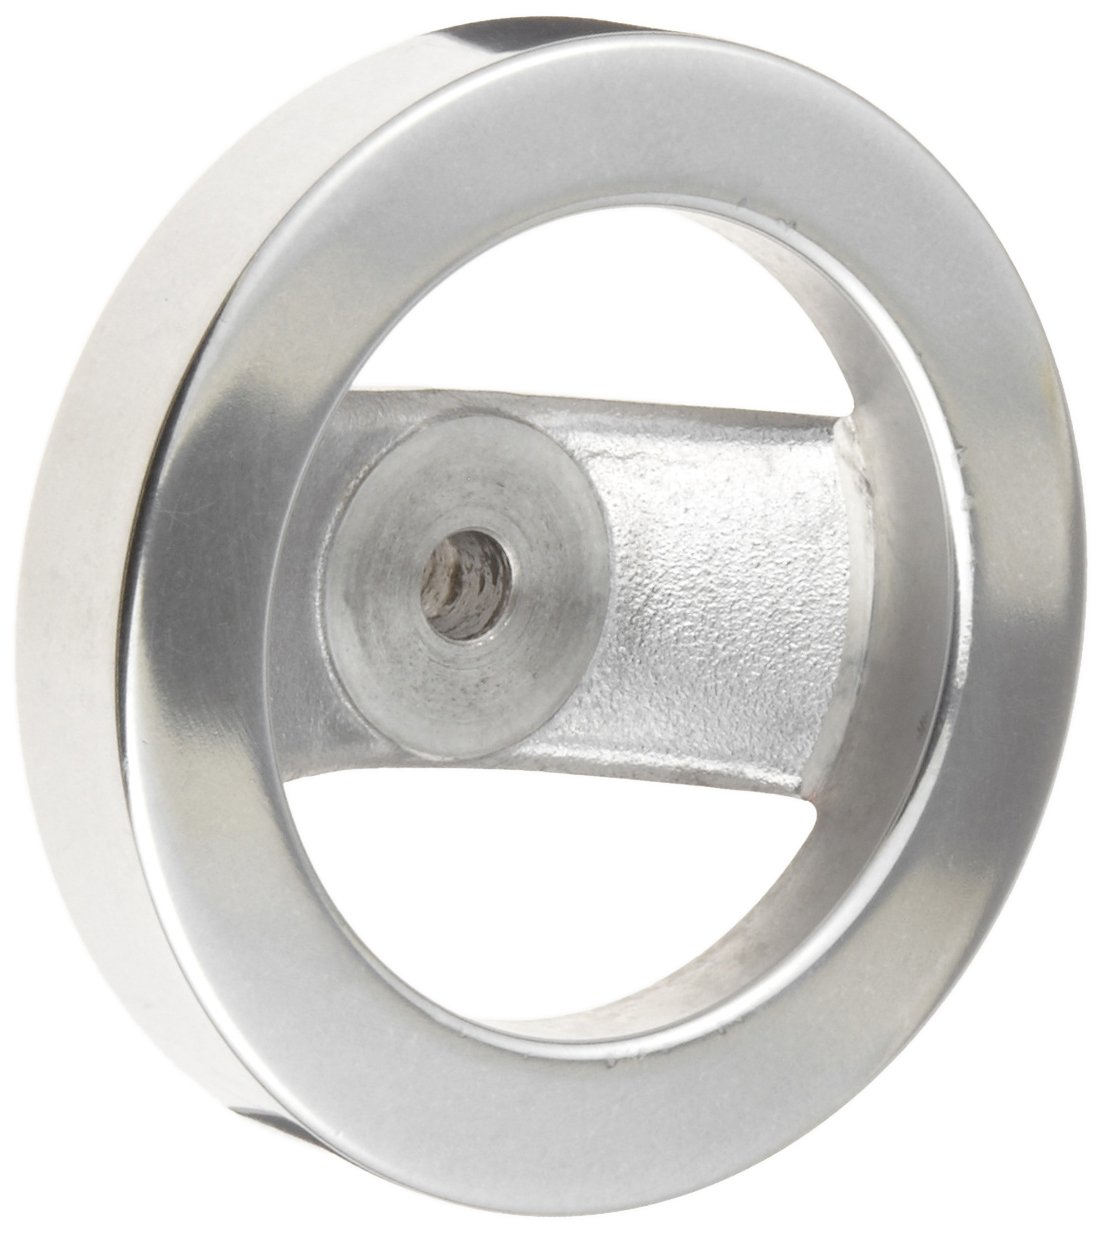 2 Spoked Polished Aluminum Dished Hand Wheel without Handle, 4'' Diameter, 3/8'' Hole Diameter (Pack of 1)